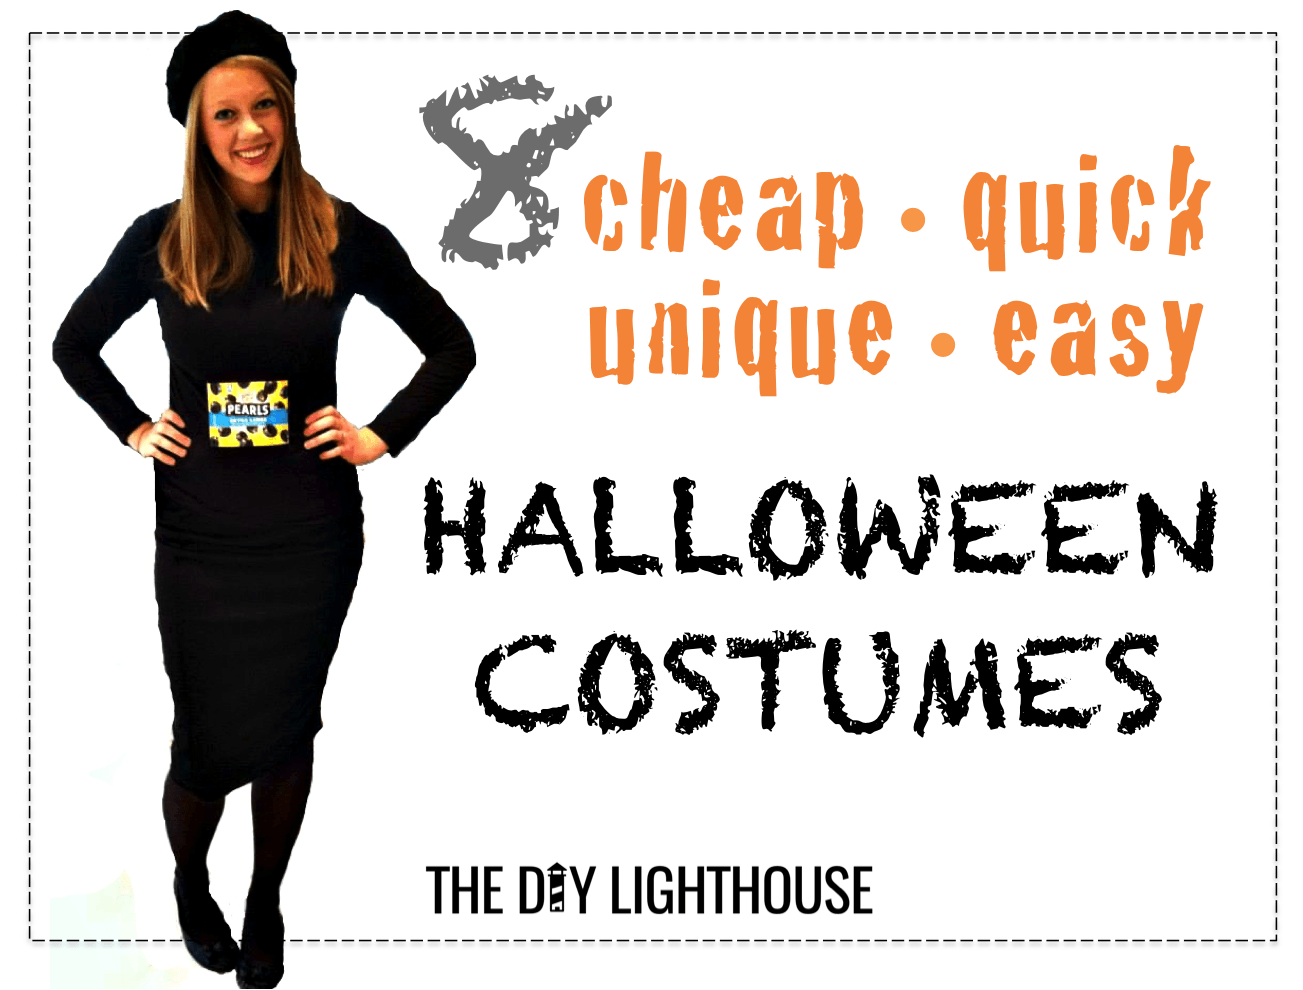 ideas for cheap quick unique easy halloween costumes saveenlarge